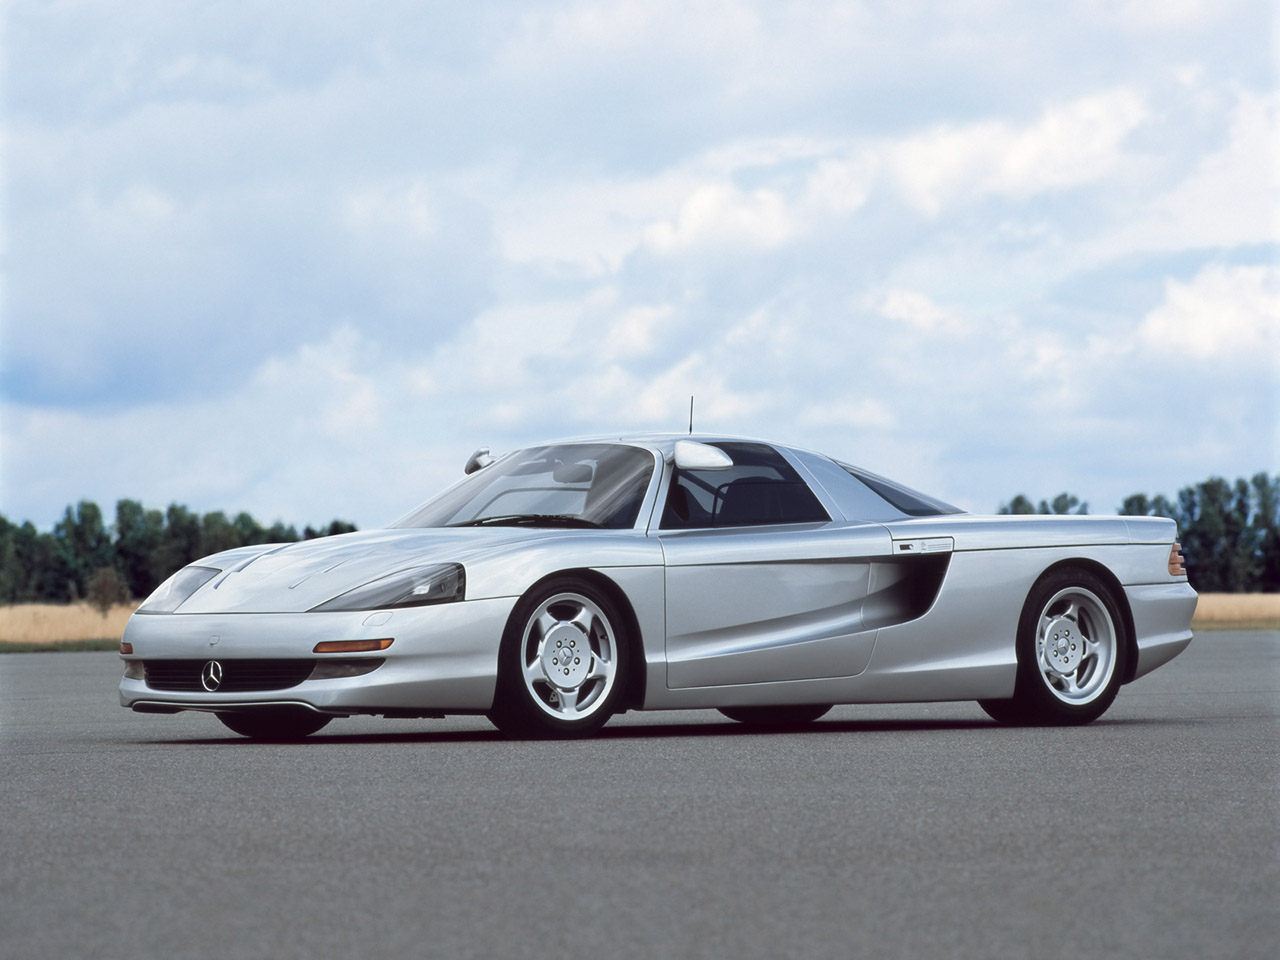 mercedes-benz c 112-pic. 1